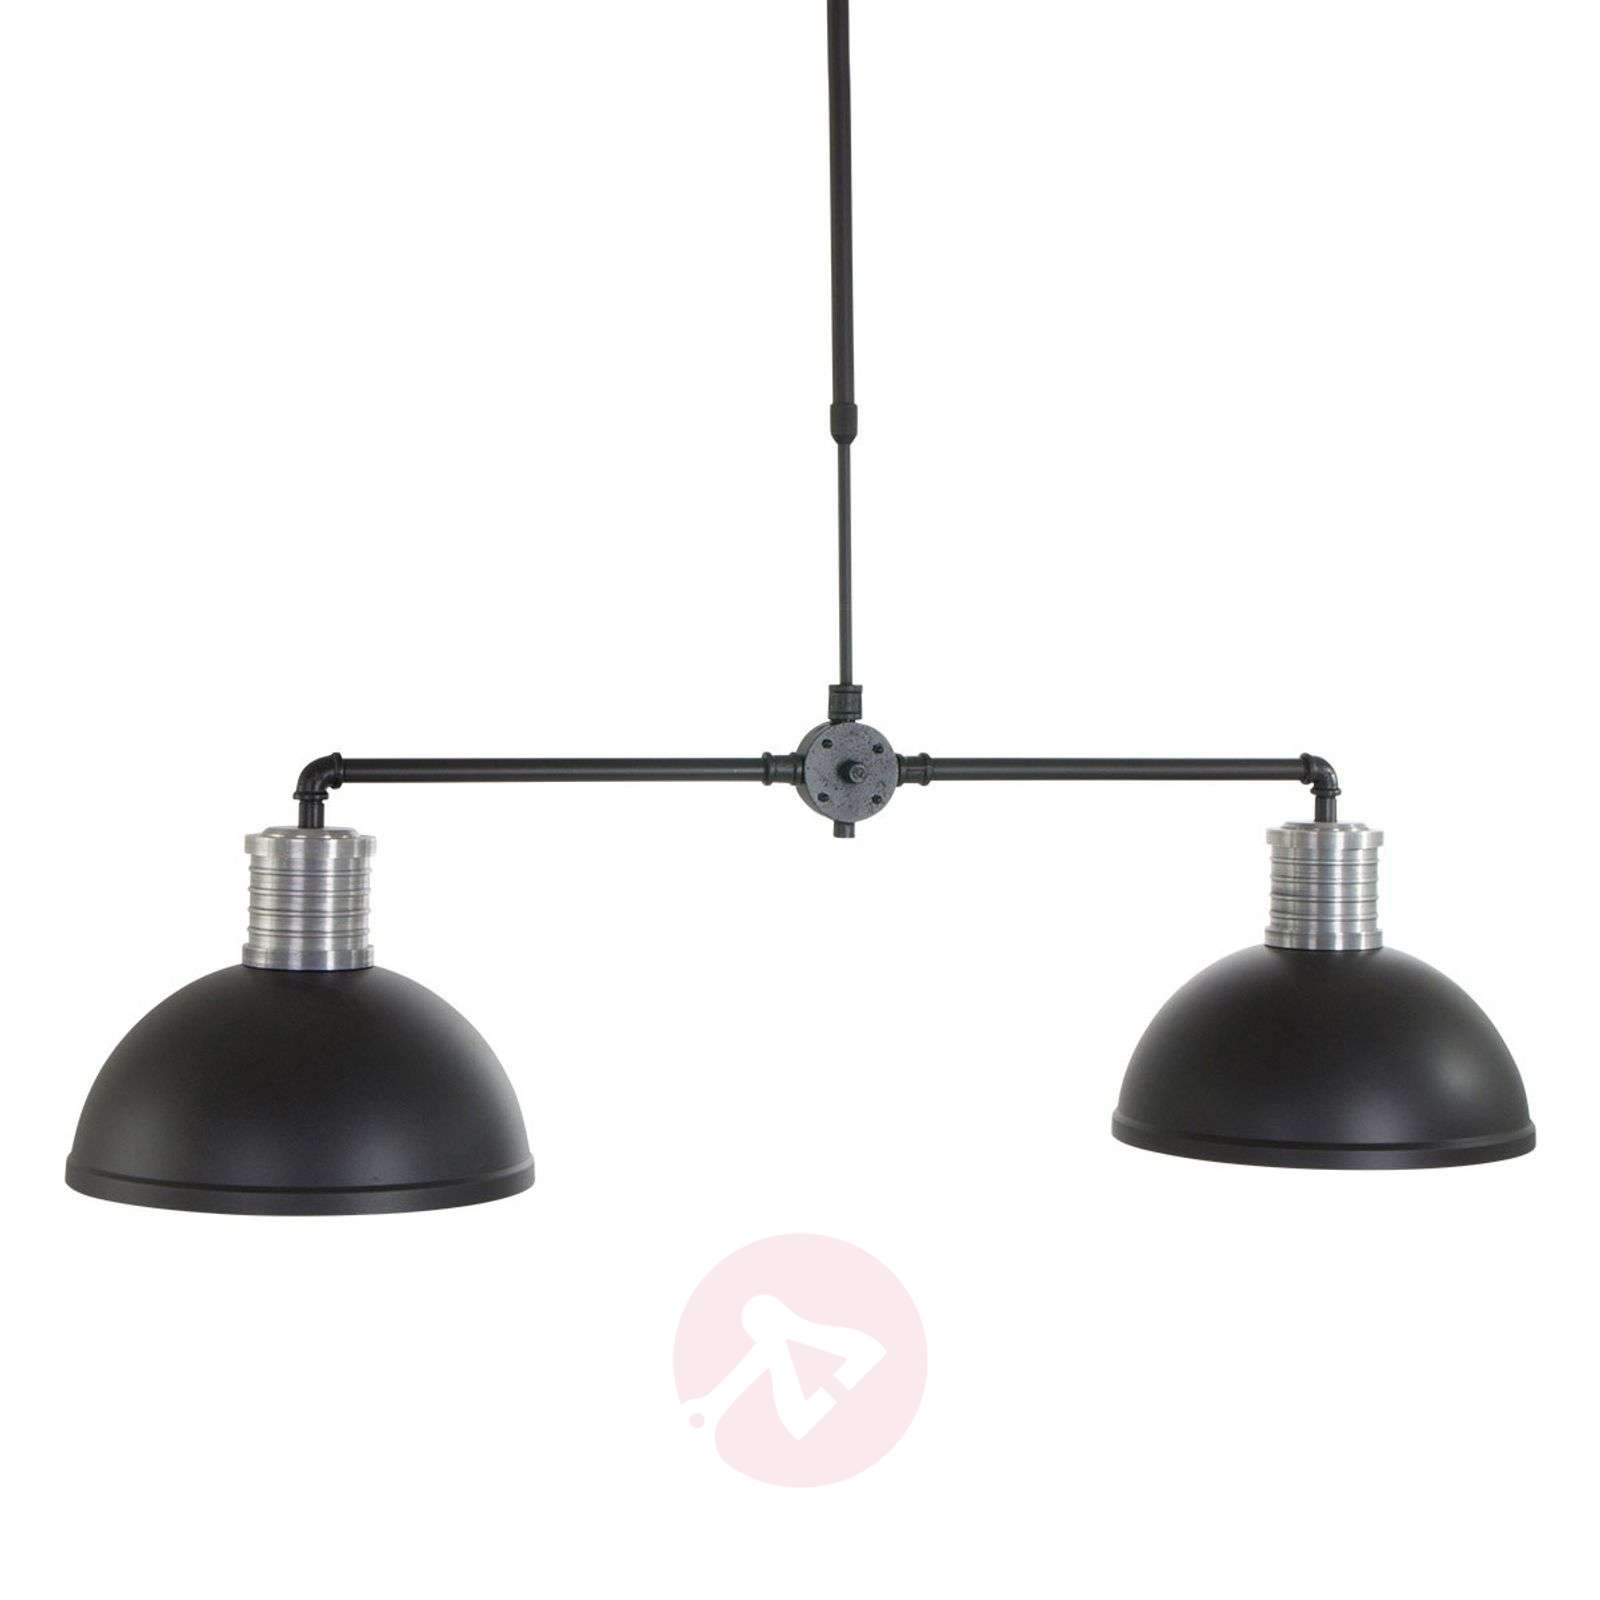 pendant lights light metallic small nickel industrial ceiling